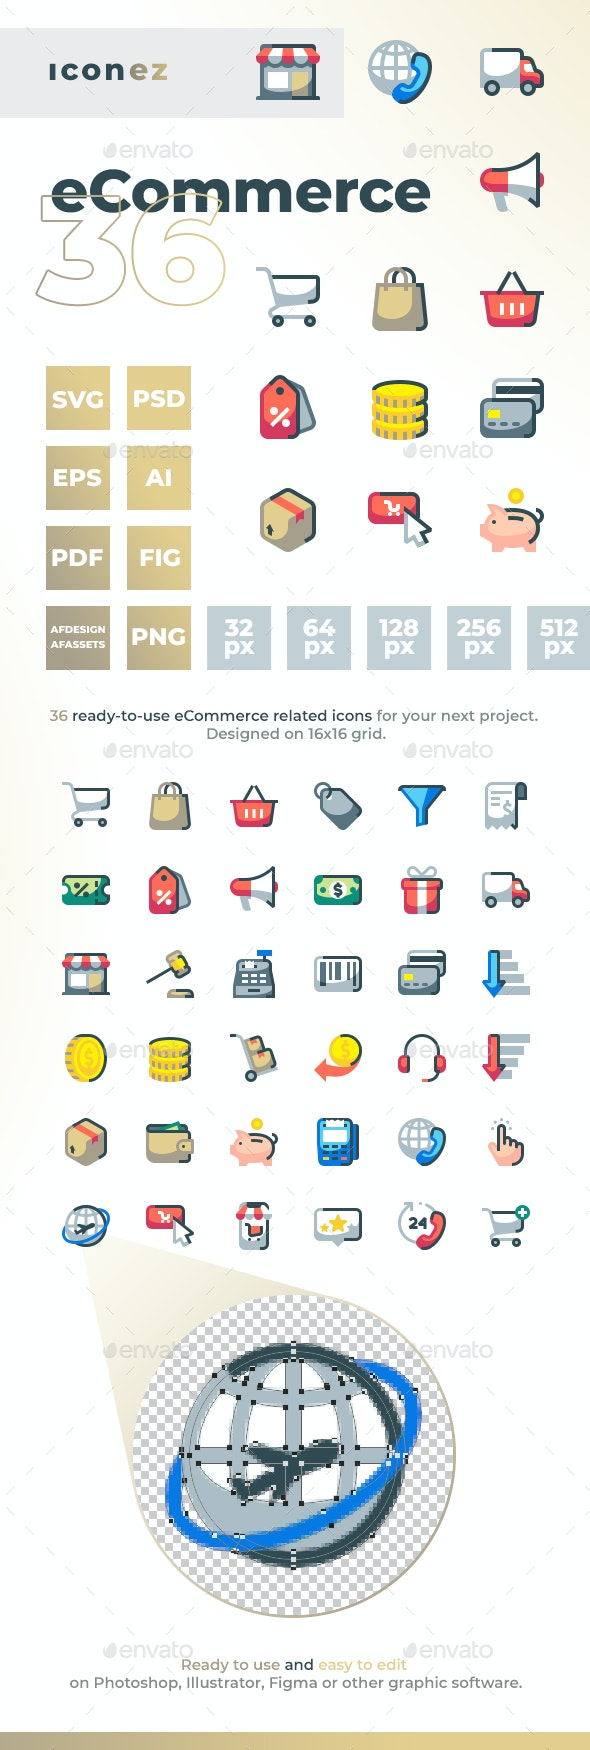 Iconez - eCommerce - Objects Icons